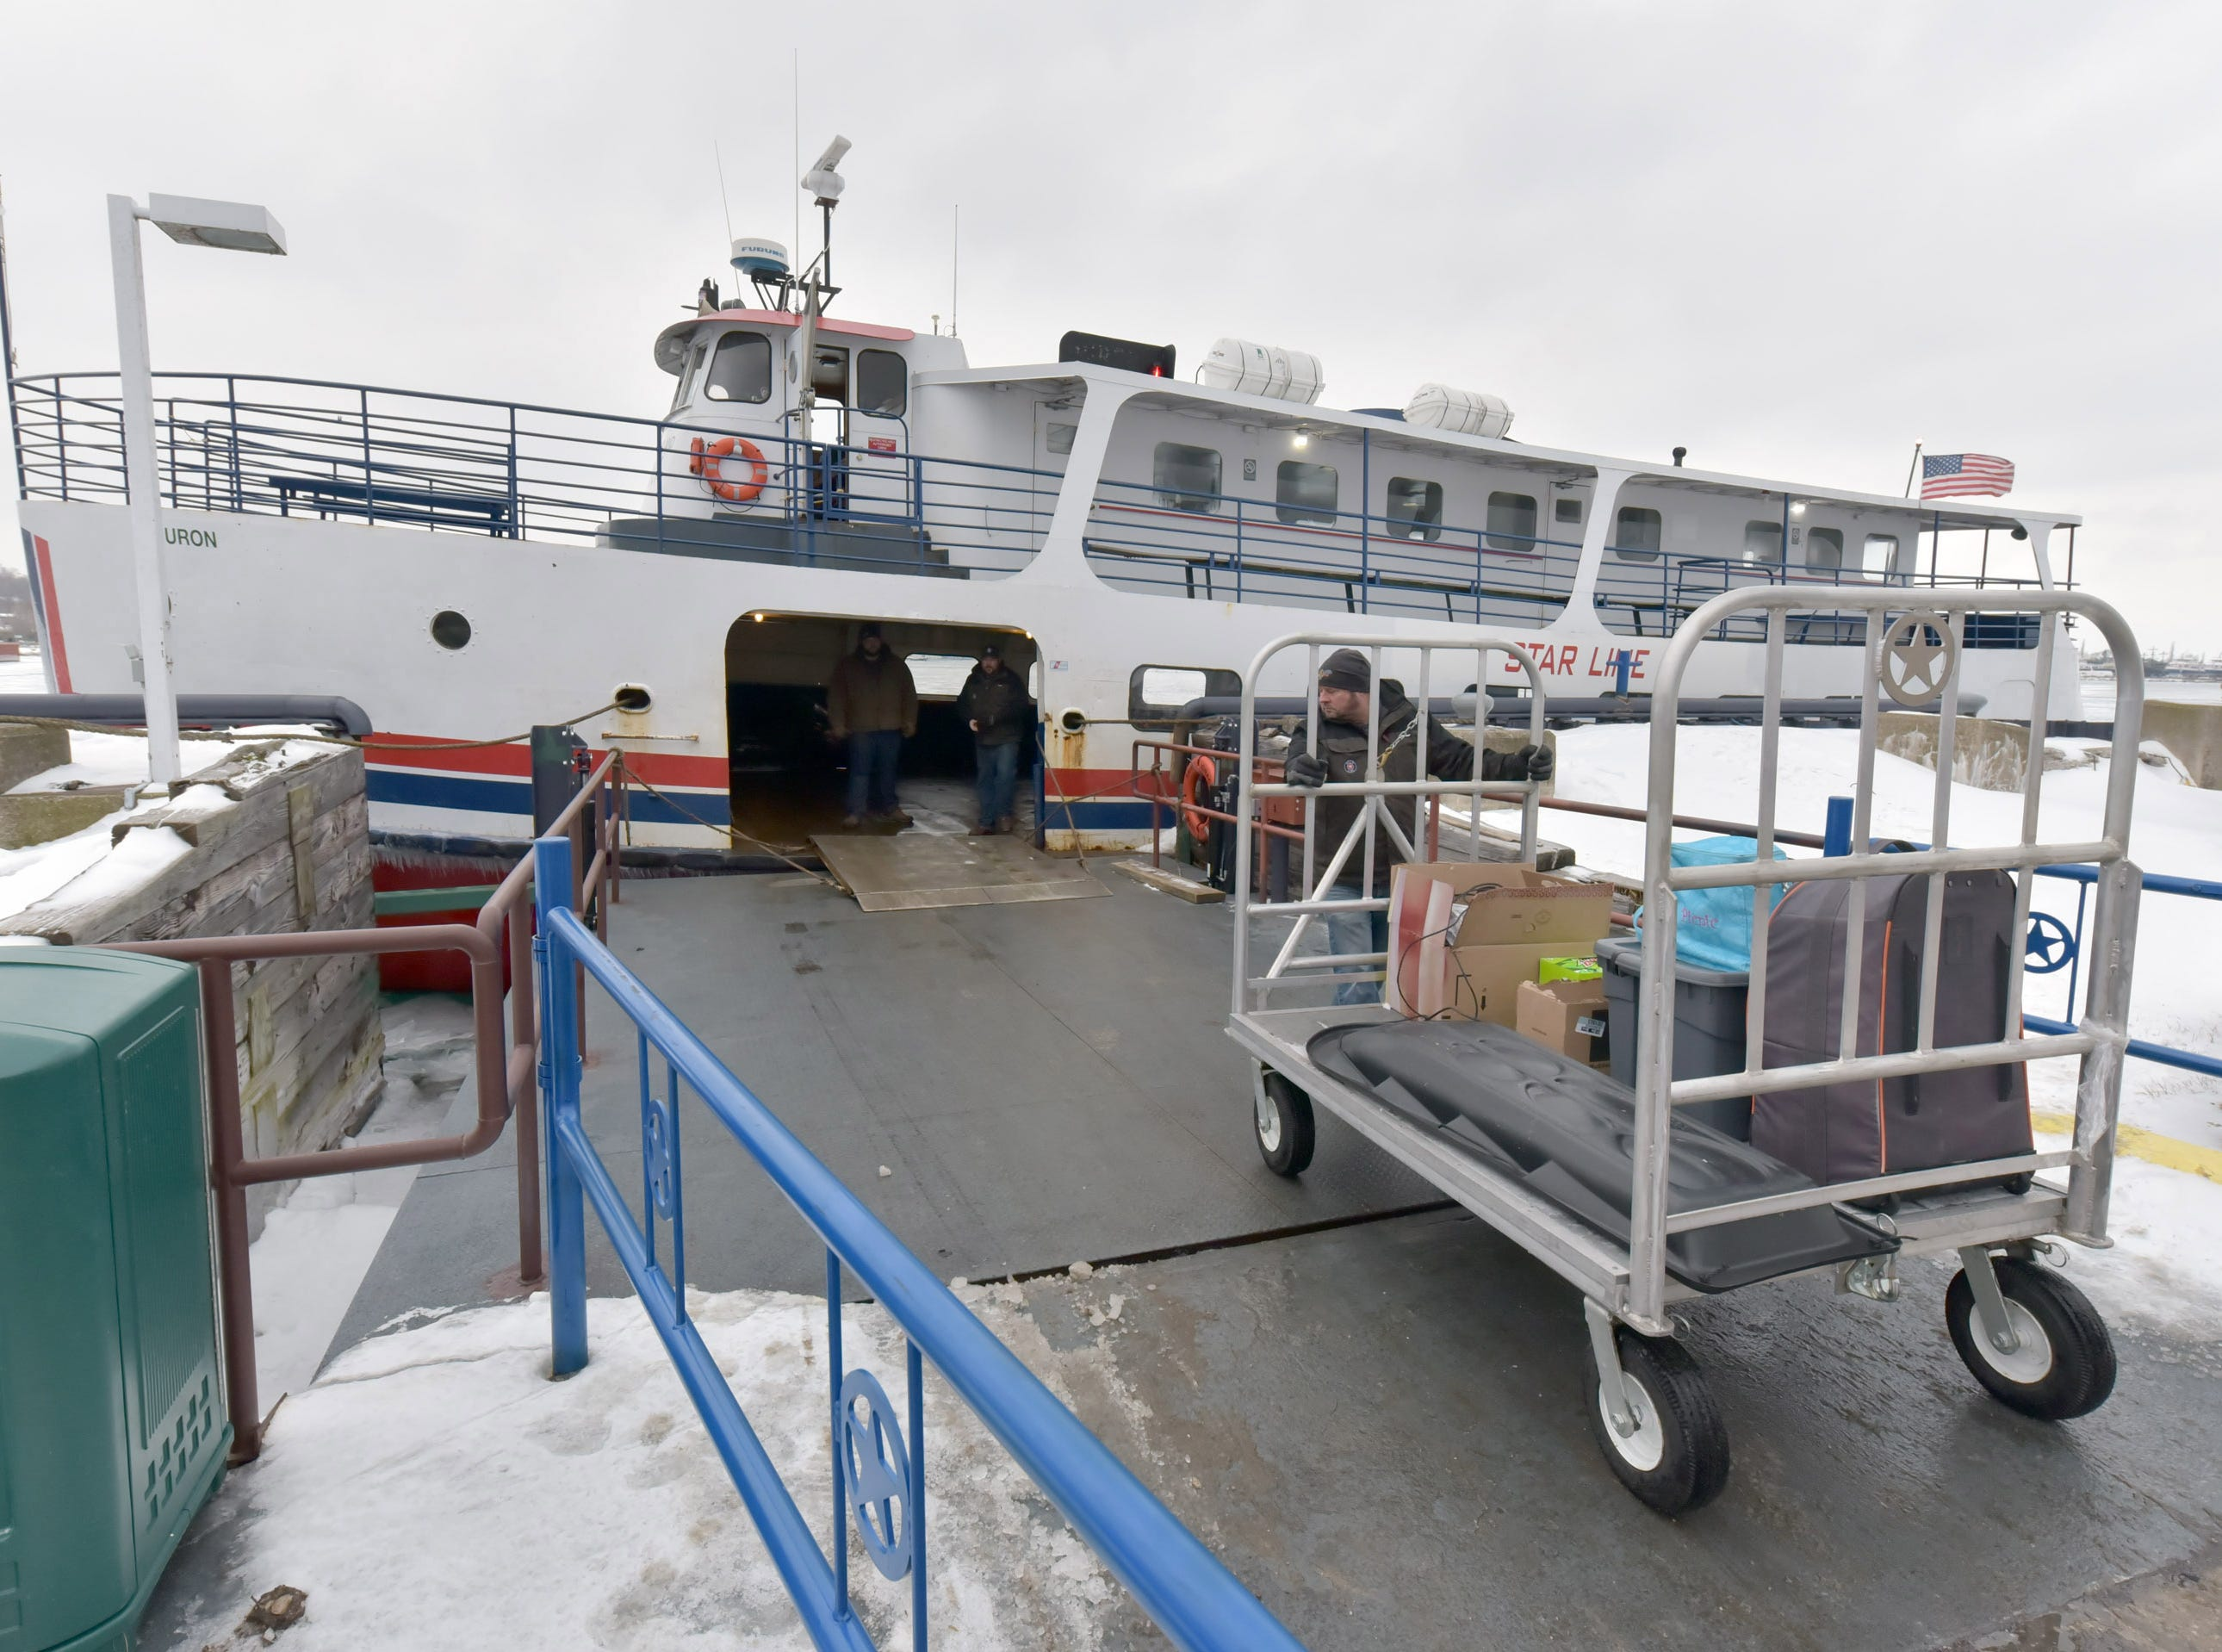 The Star Line's Huron is the only ferry running during the winter months to Michigan's Mackinac Island. With ice-breaking capabilities, the ferry runs several times each day to the island, keeping supplies and people moving during the winter months. The ferry will operate until the ice becomes too thick to break a path.